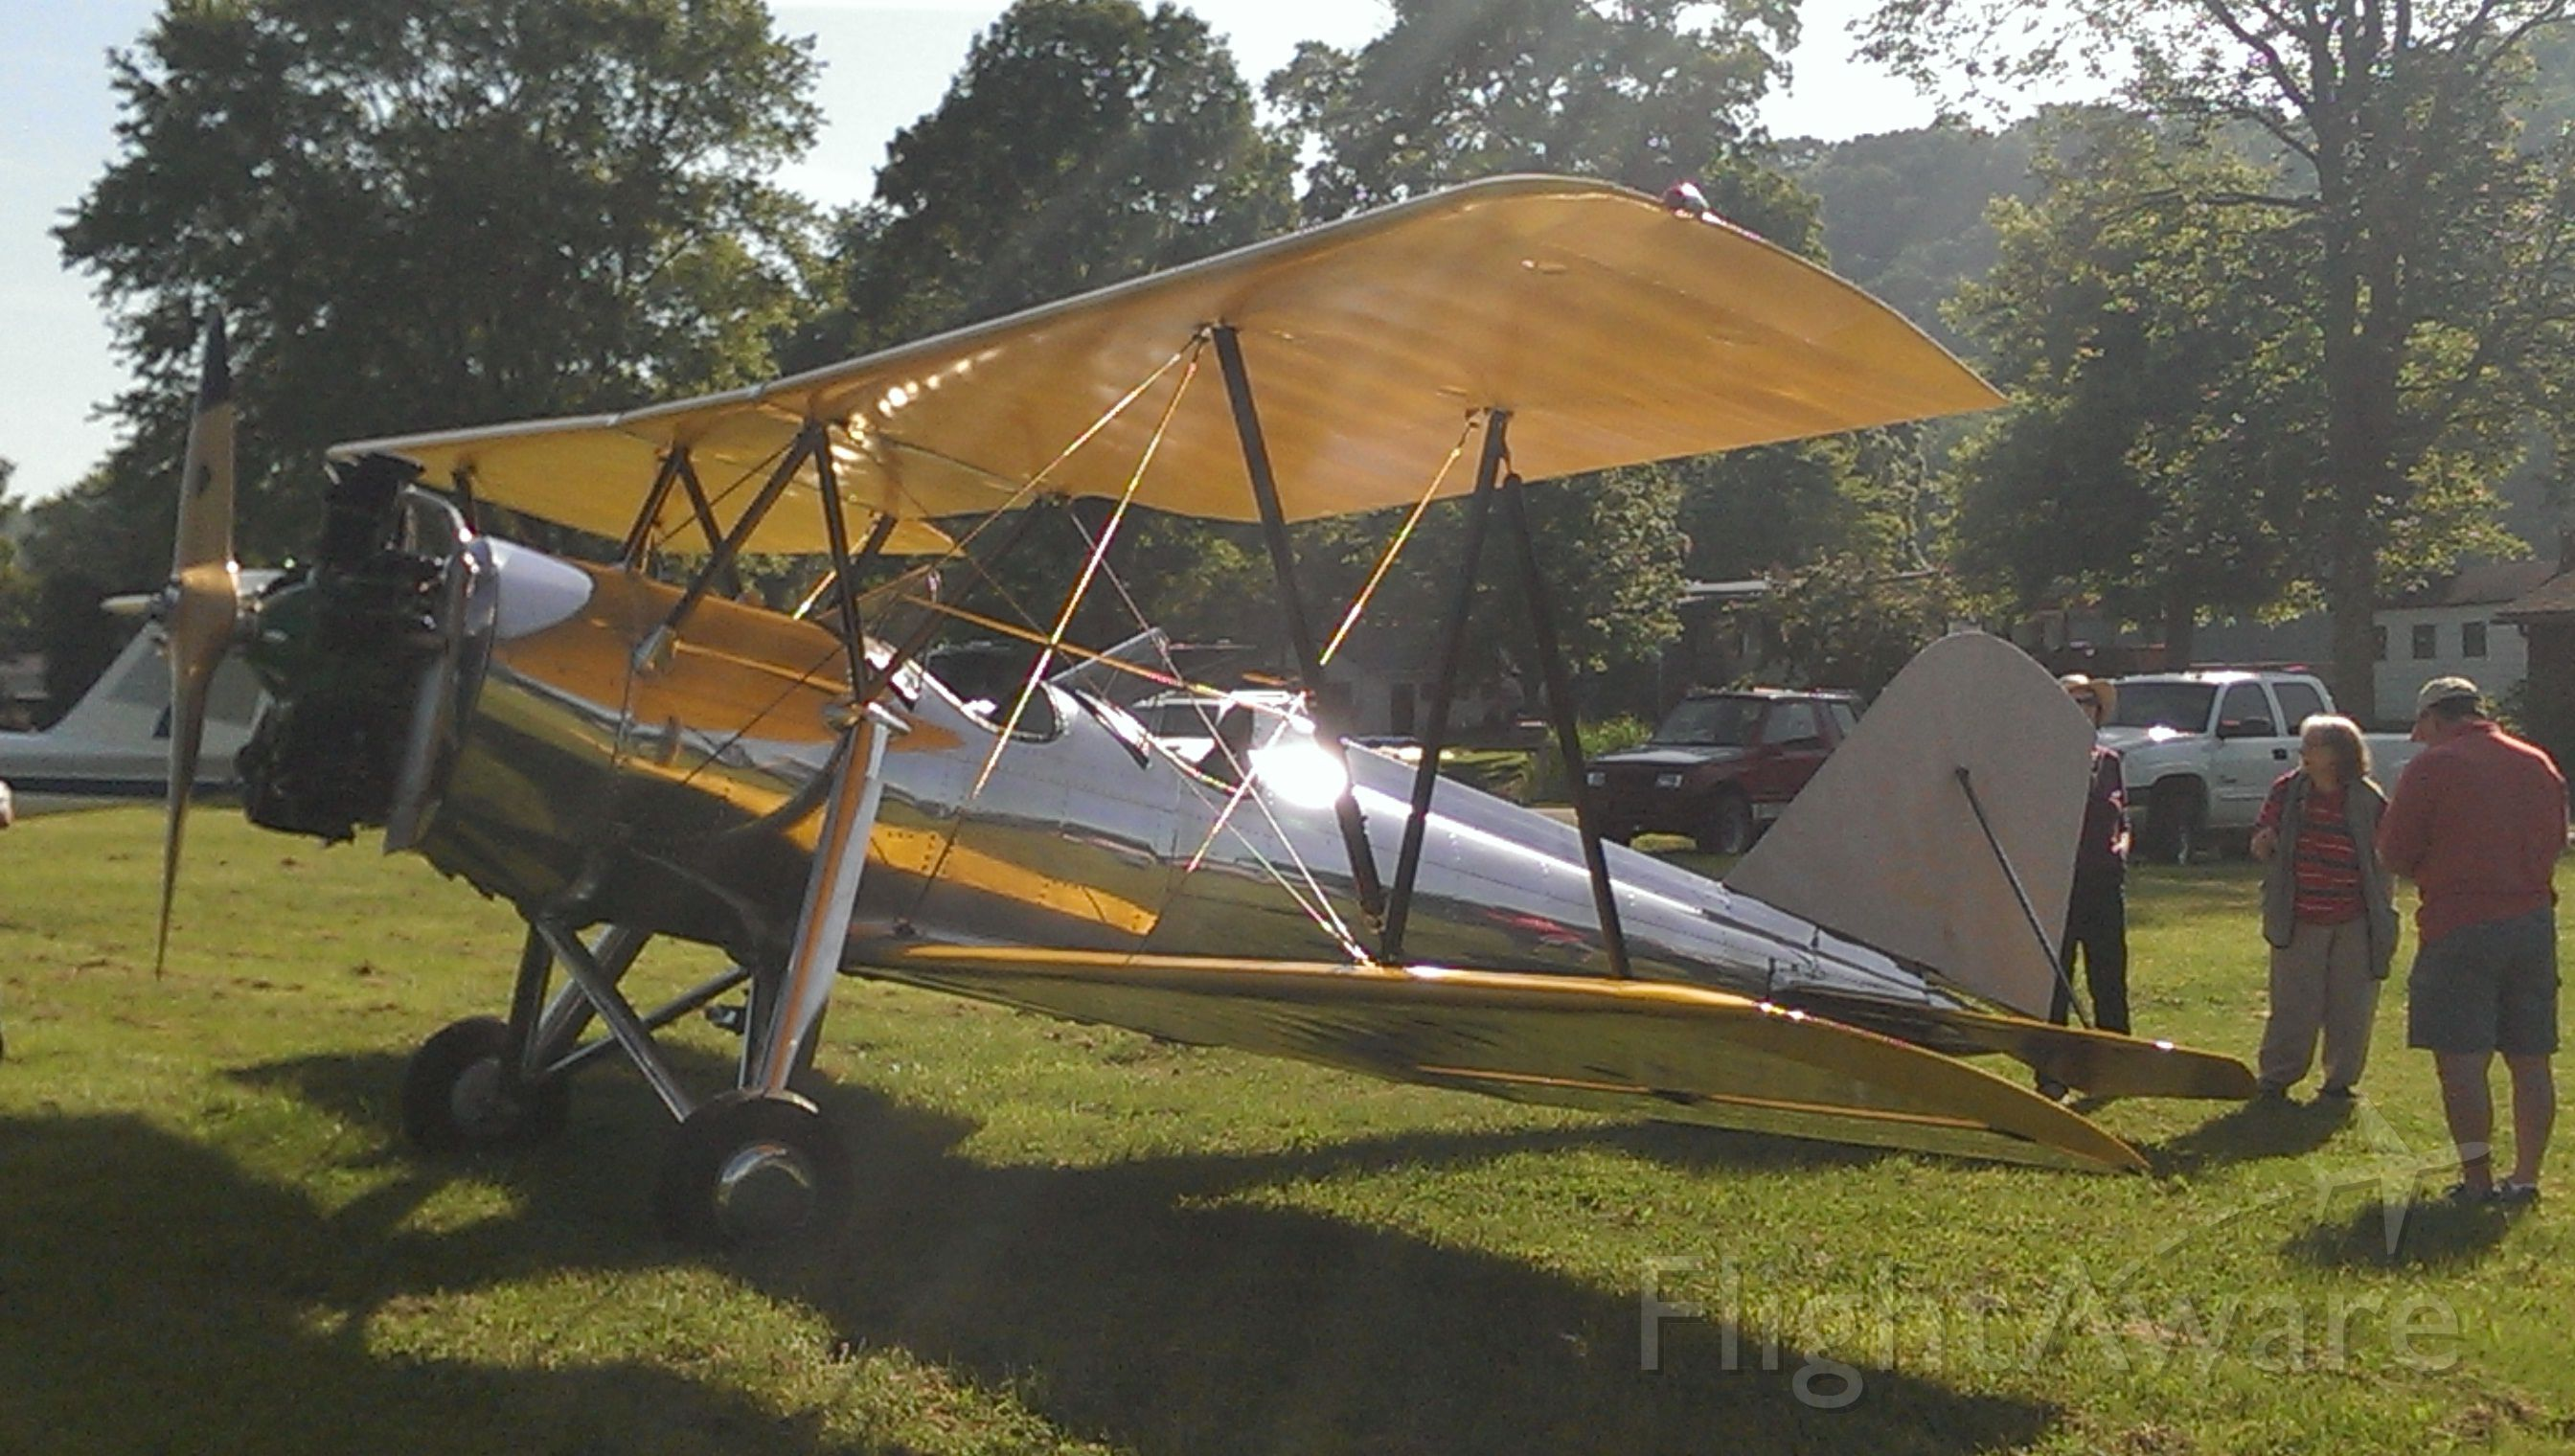 — — - unknown, any info welcome, Ohio EAA Fly-In, September, 2014